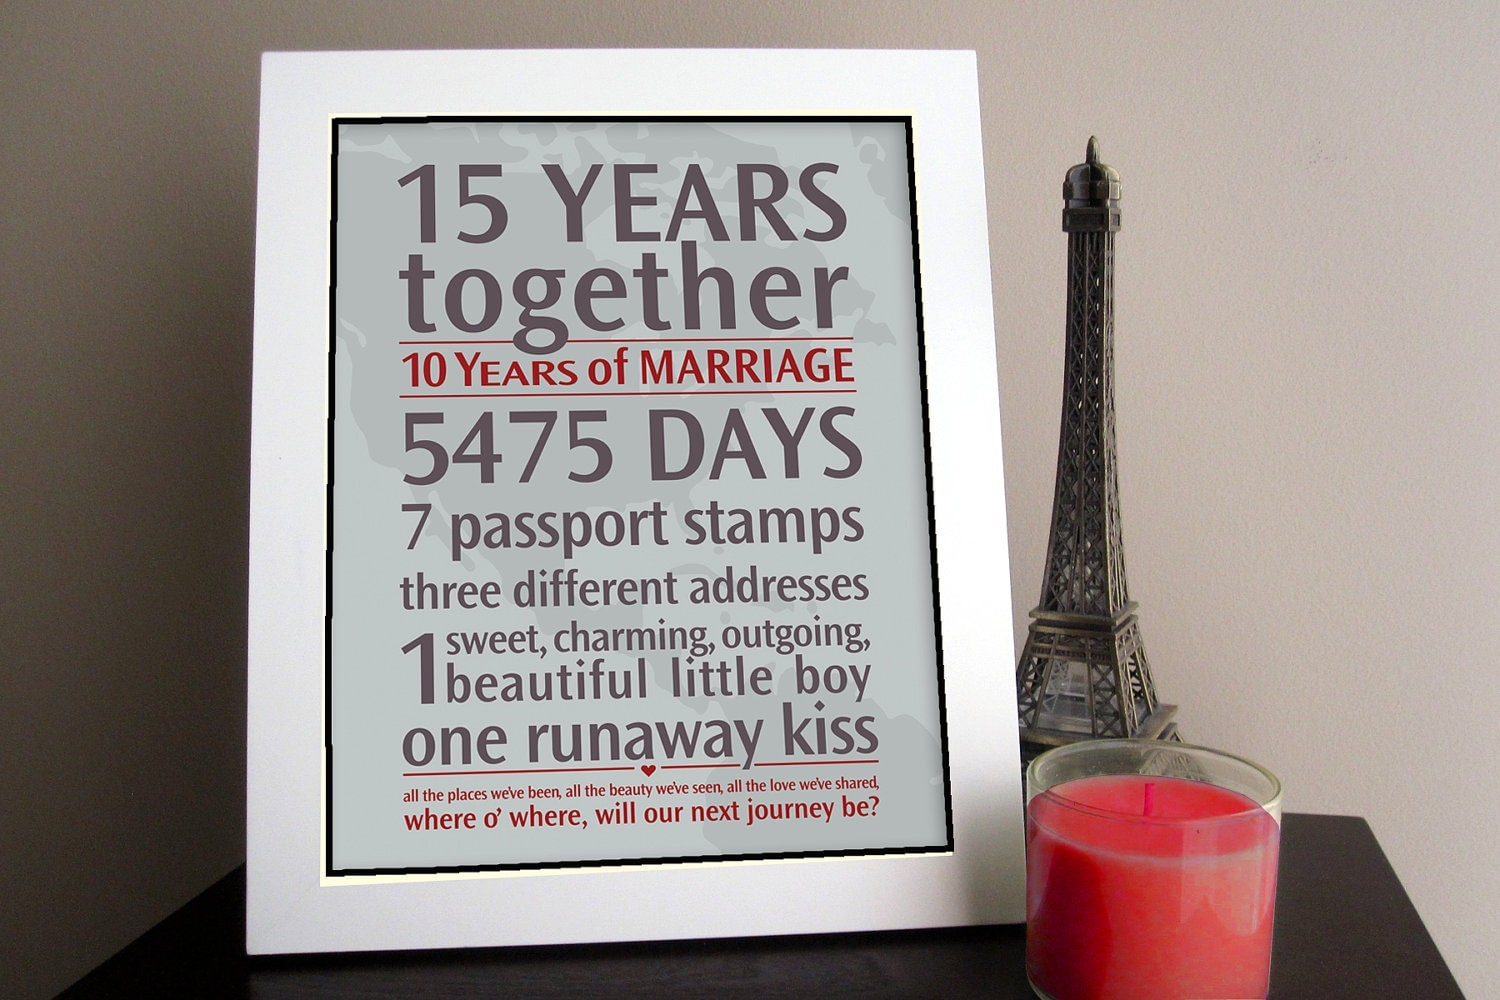 What Are The Gifts For Wedding Anniversaries: DIY Personalized Wedding Anniversary Gift: By